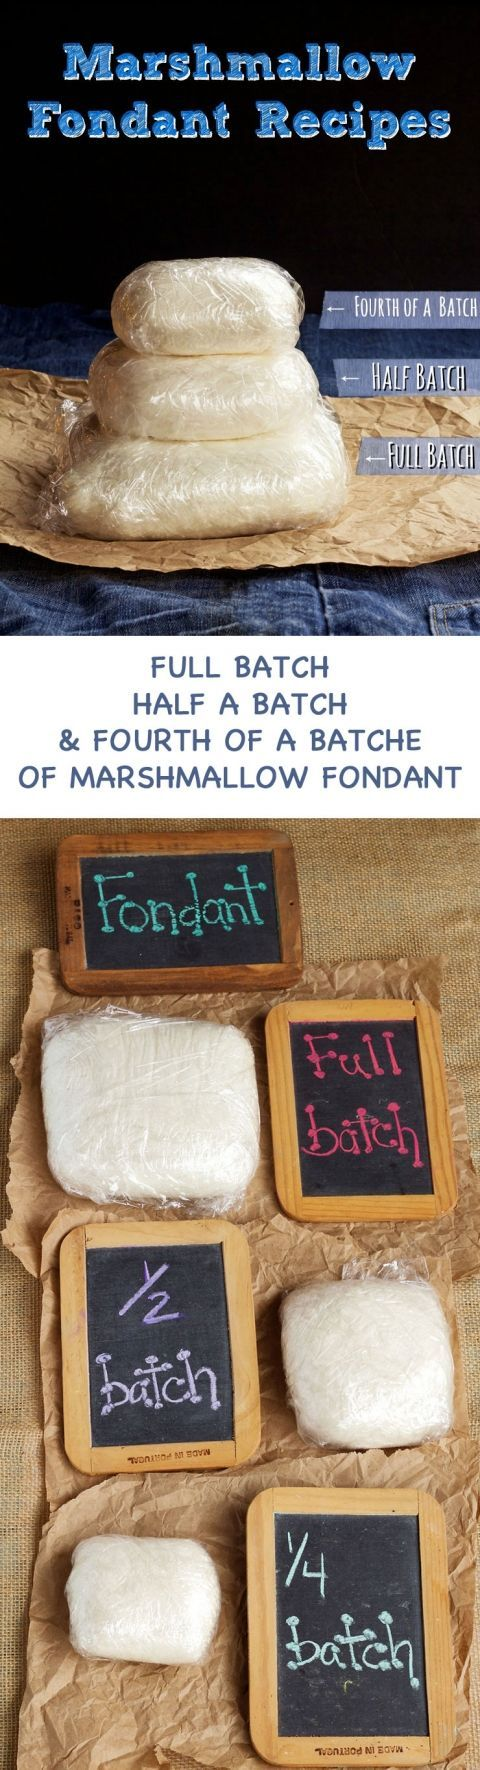 Looking for a Marshmallow Fondant Recipe - Here is Three Different Sized Batches of an Easy Fondant Recipe-Full Batch, 1:2 Batch and 1:4 Batch via http://www.thebearfootbaker.com